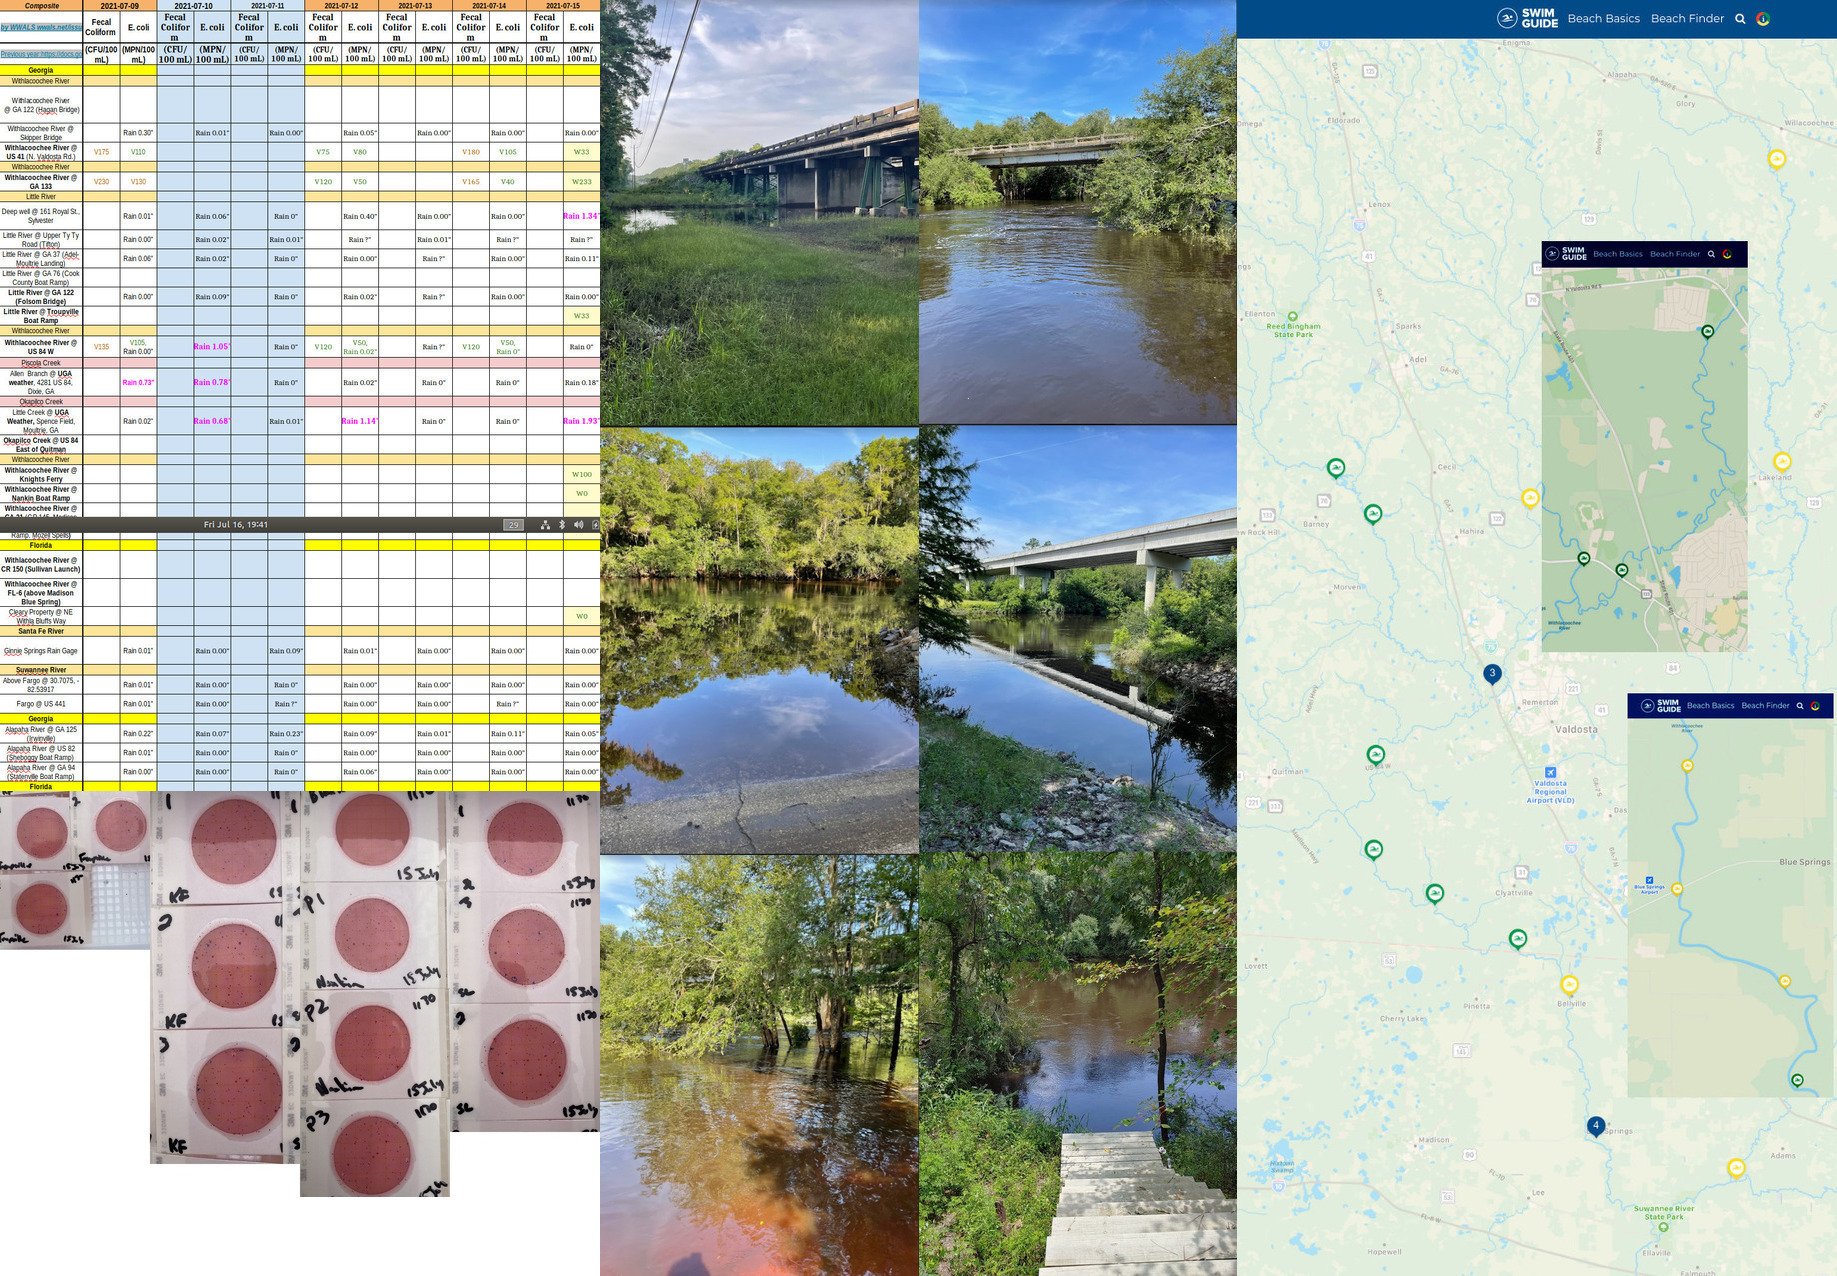 [Chart, Withlacoochee River scenes, Swim Guide]